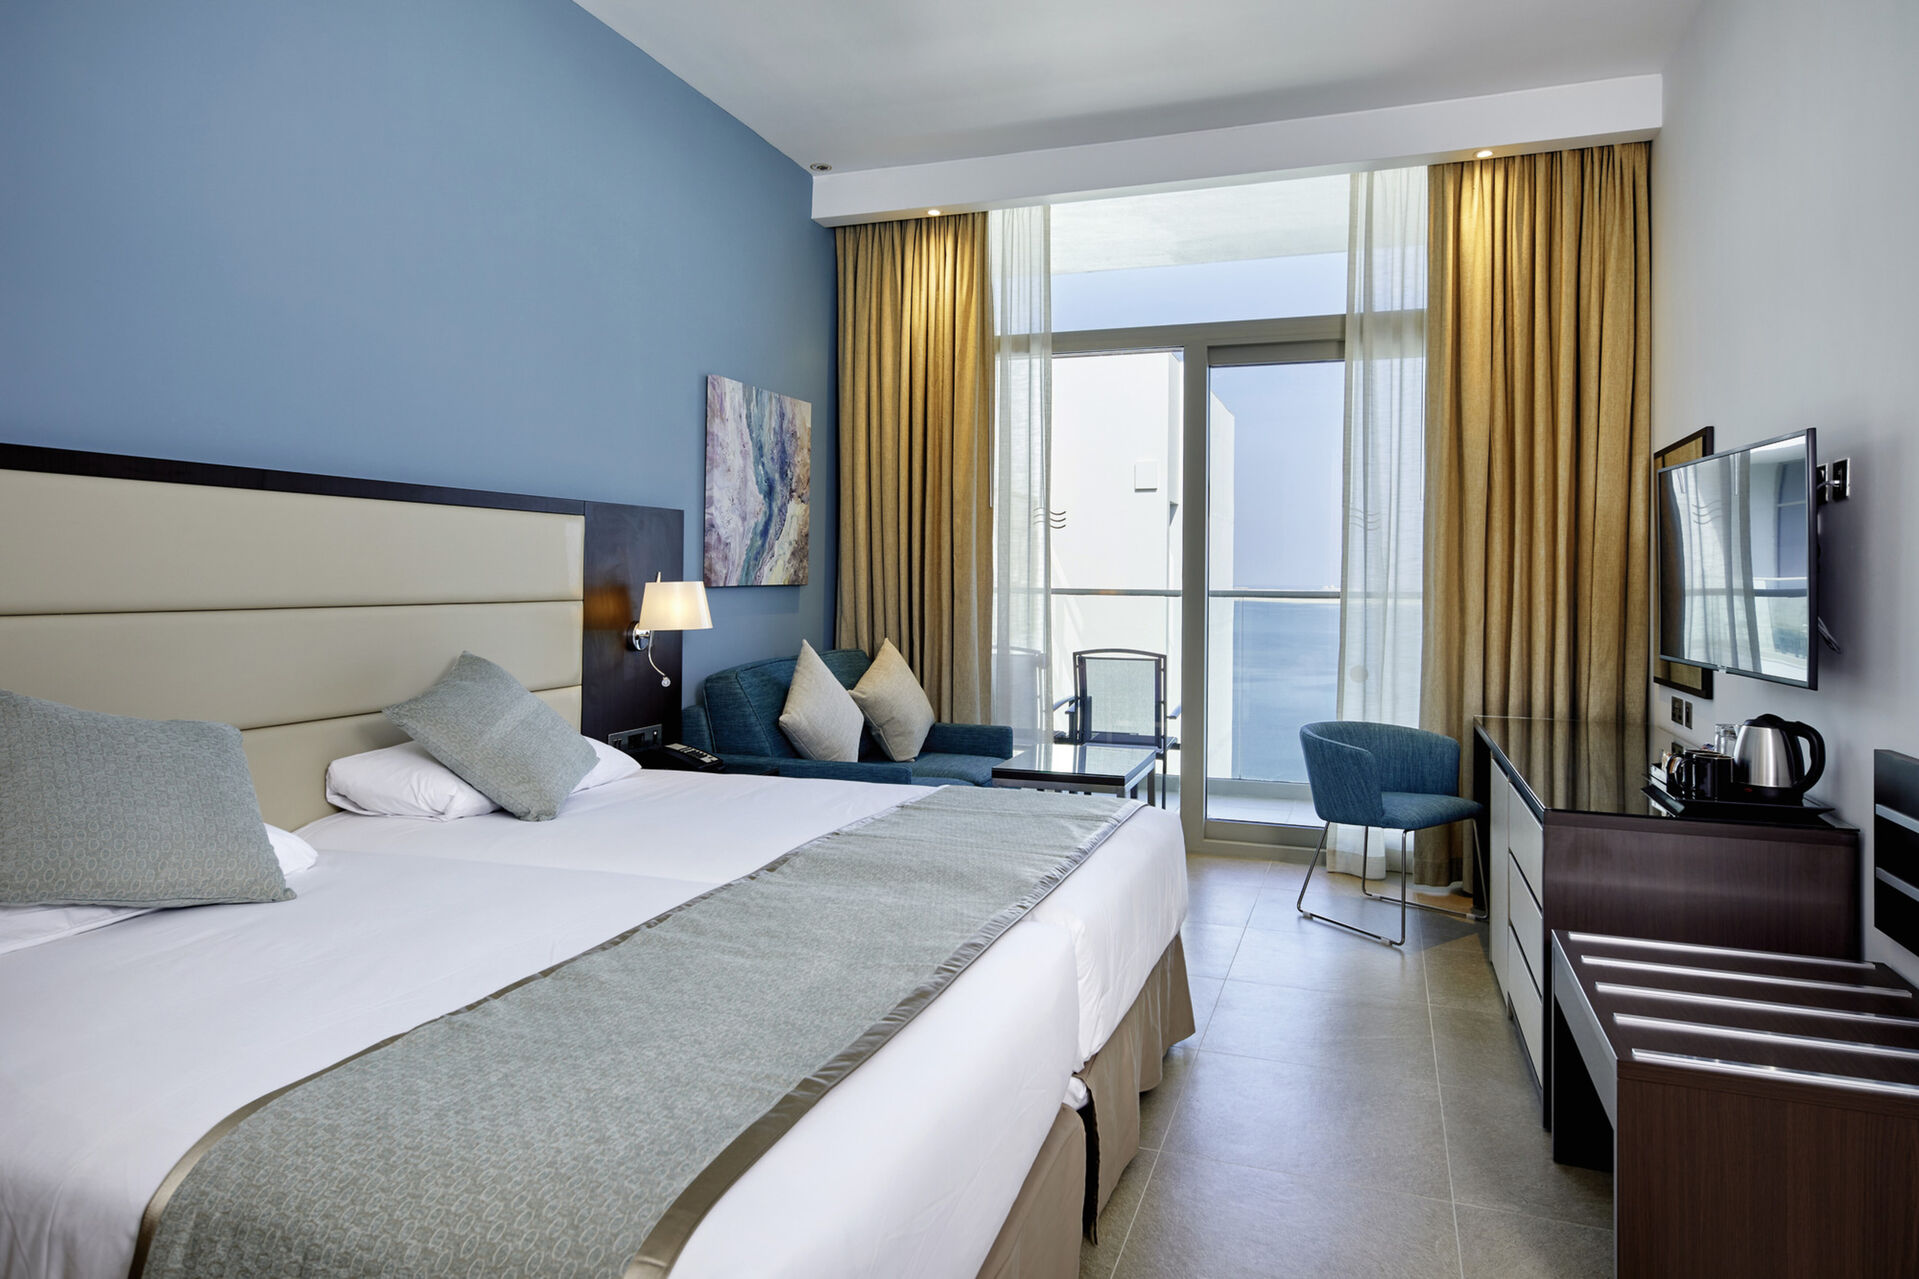 https://cms.satur.sk/data/imgs/tour_image/orig/dub_20_160-double-room-lateral-sea-view-1939896.jpg